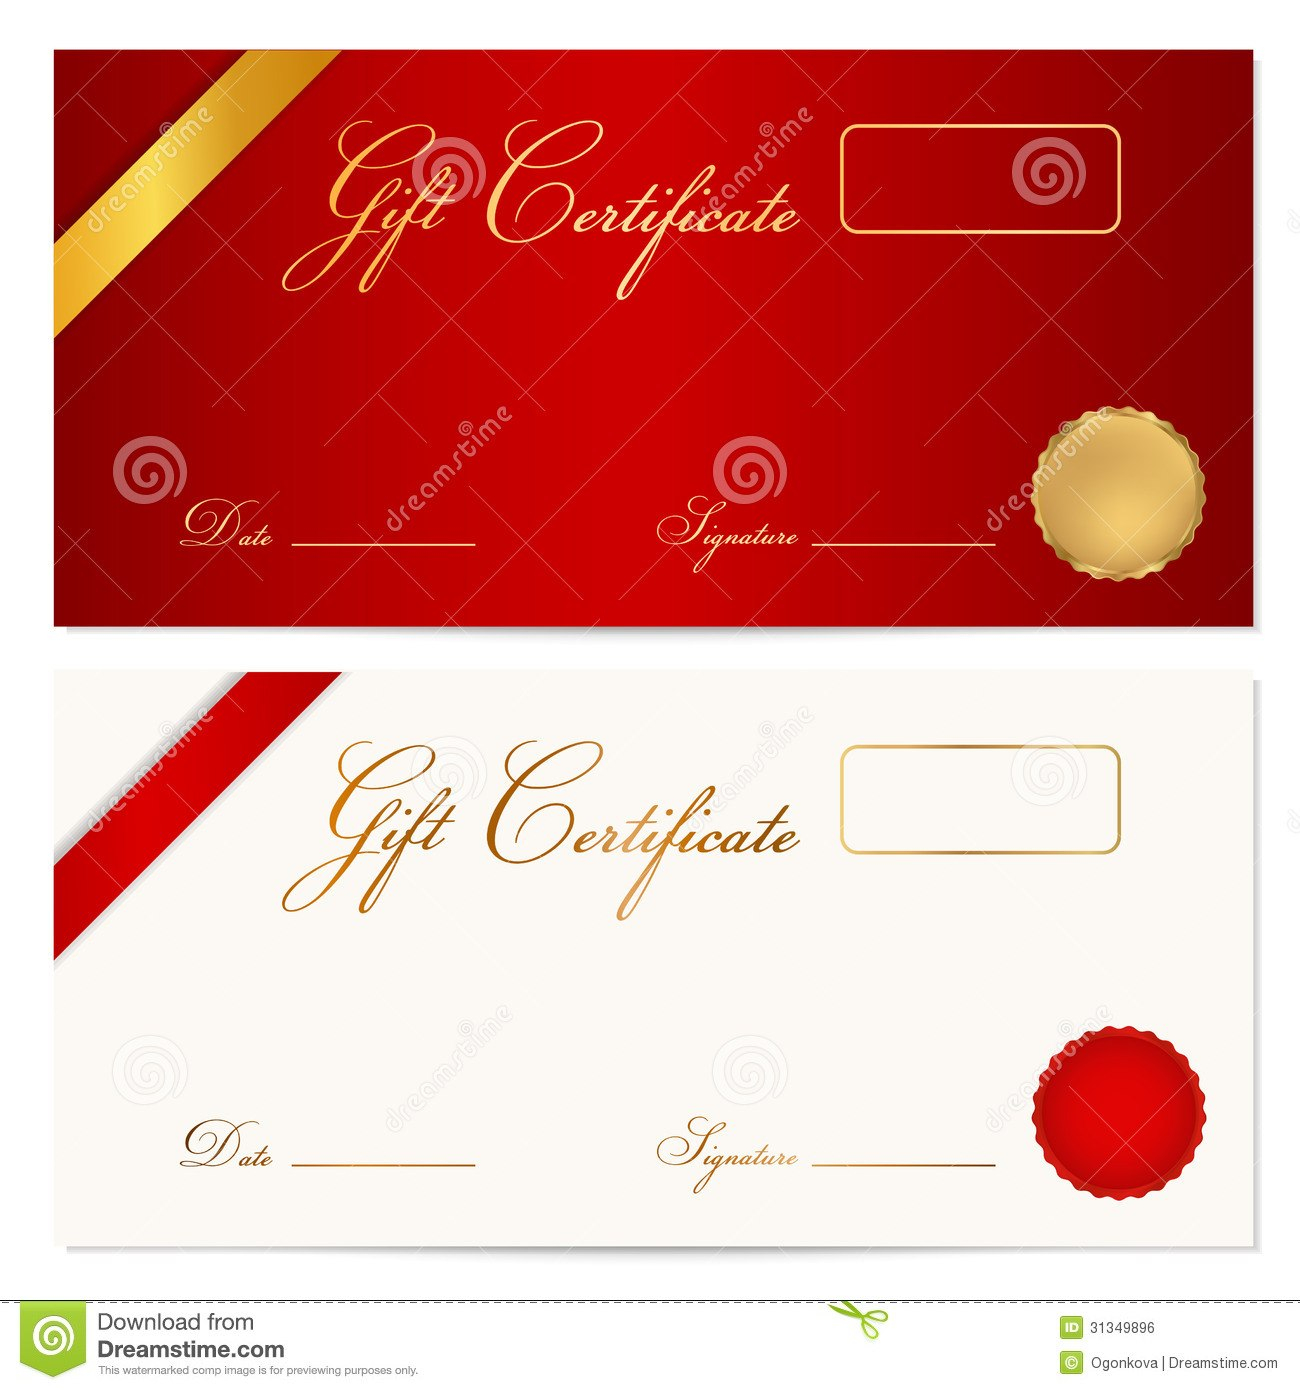 Gift Certificate Voucher Template Wax Seal Stock Vector For Present Certificate Templates